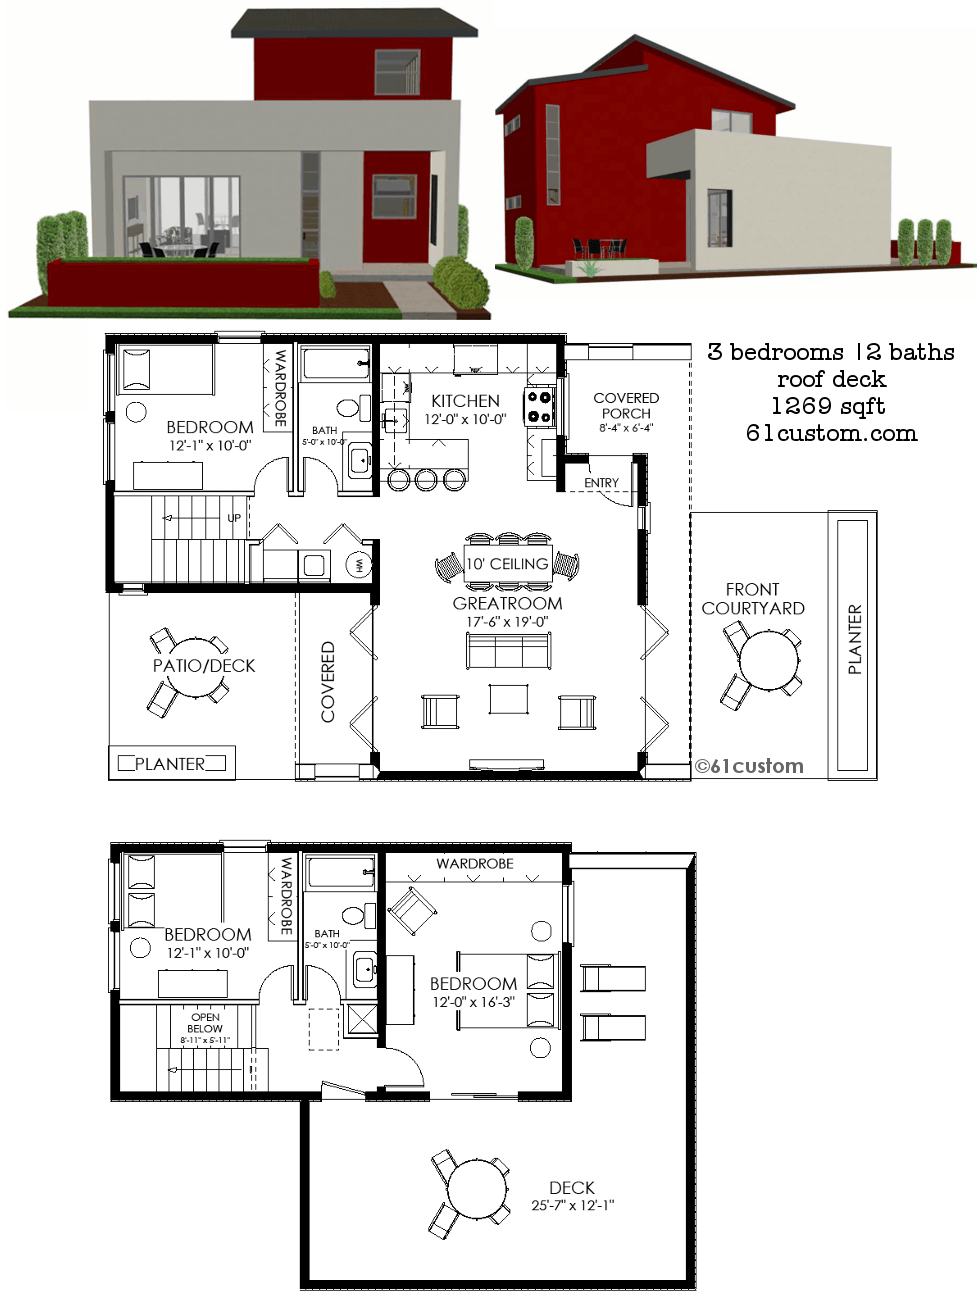 Contemporary small house plan 61custom contemporary Home layout planner